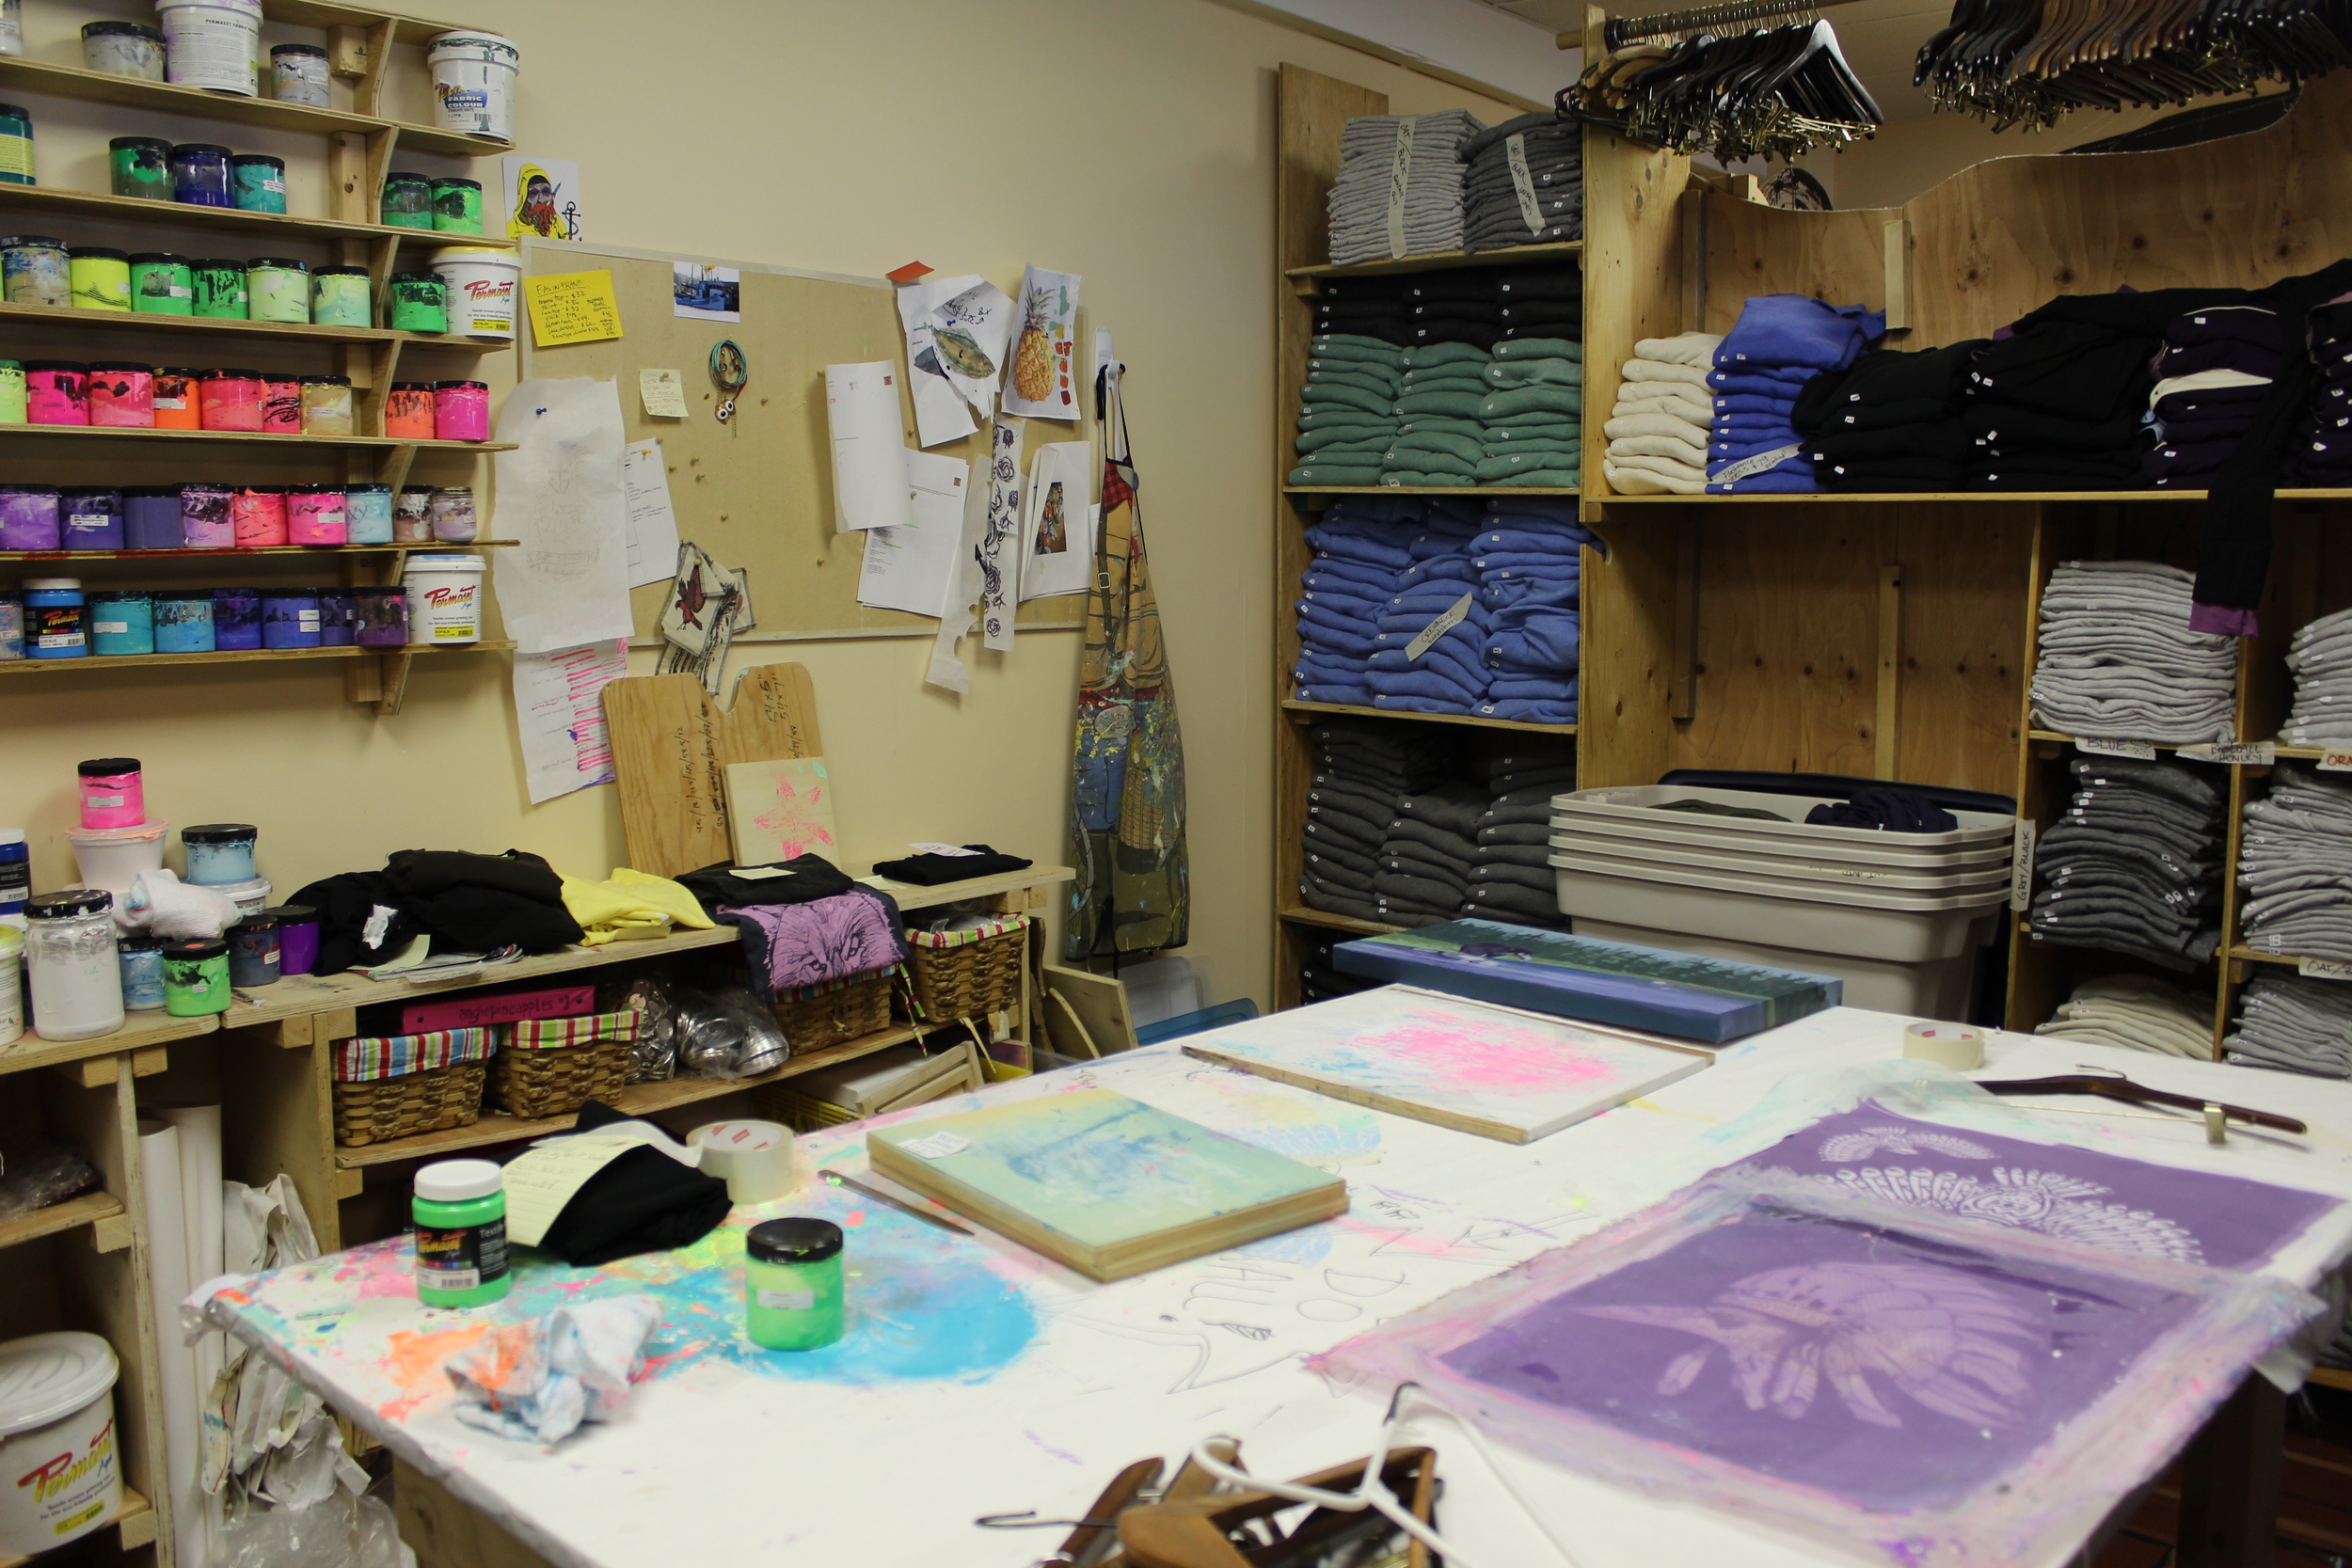 Pinas print table. I love screen printing. Reminded me of the fantastic education I was given at CCAD.